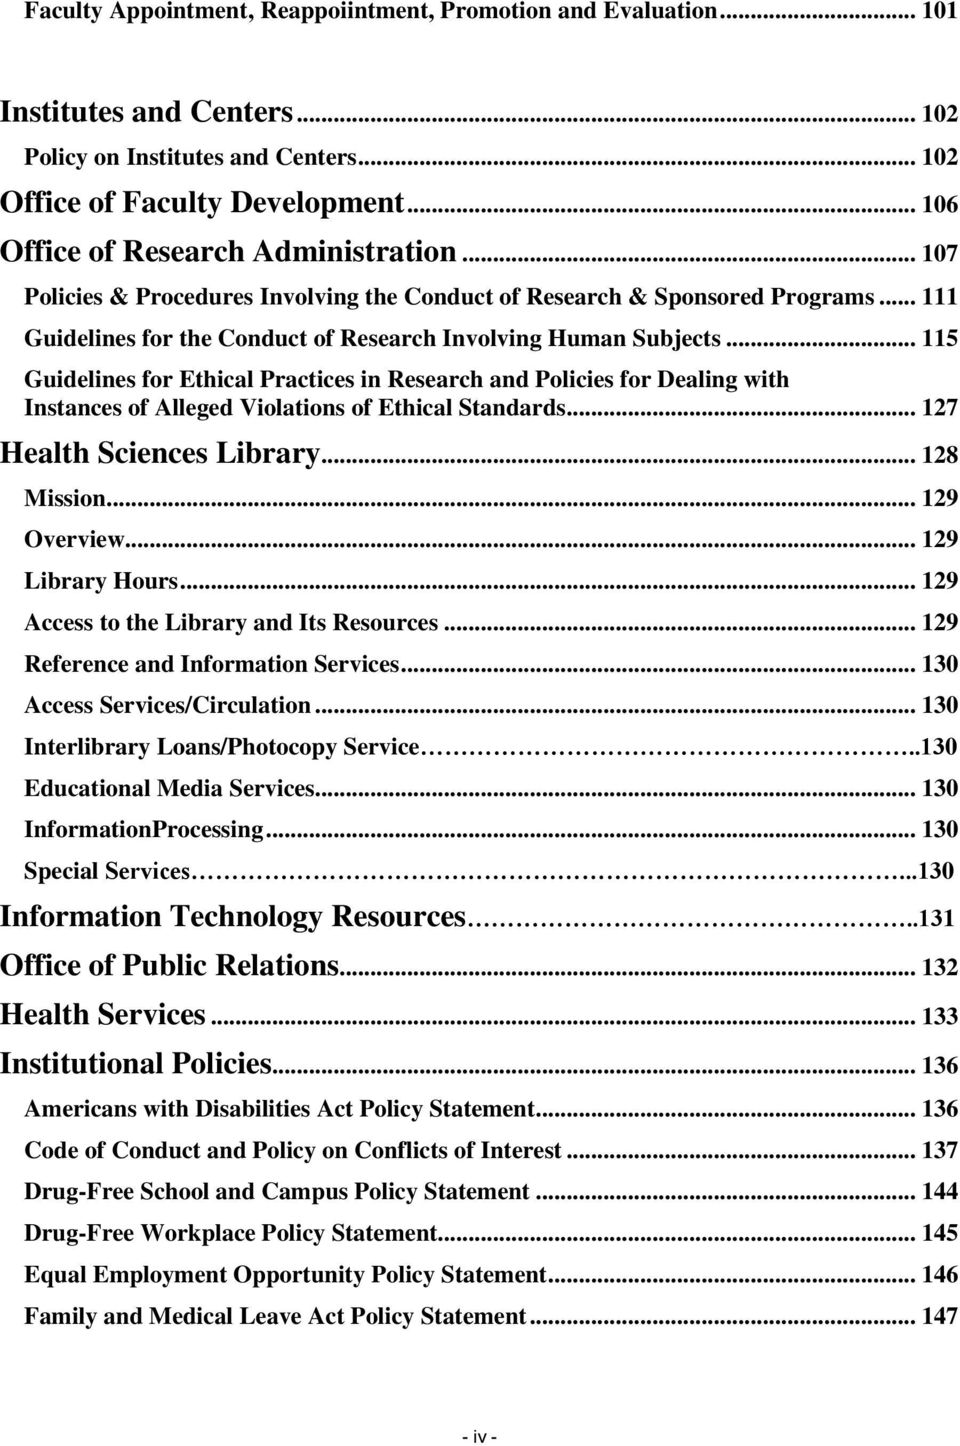 .. 115 Guidelines for Ethical Practices in Research and Policies for Dealing with Instances of Alleged Violations of Ethical Standards... 127 Health Sciences Library... 128 Mission... 129 Overview.